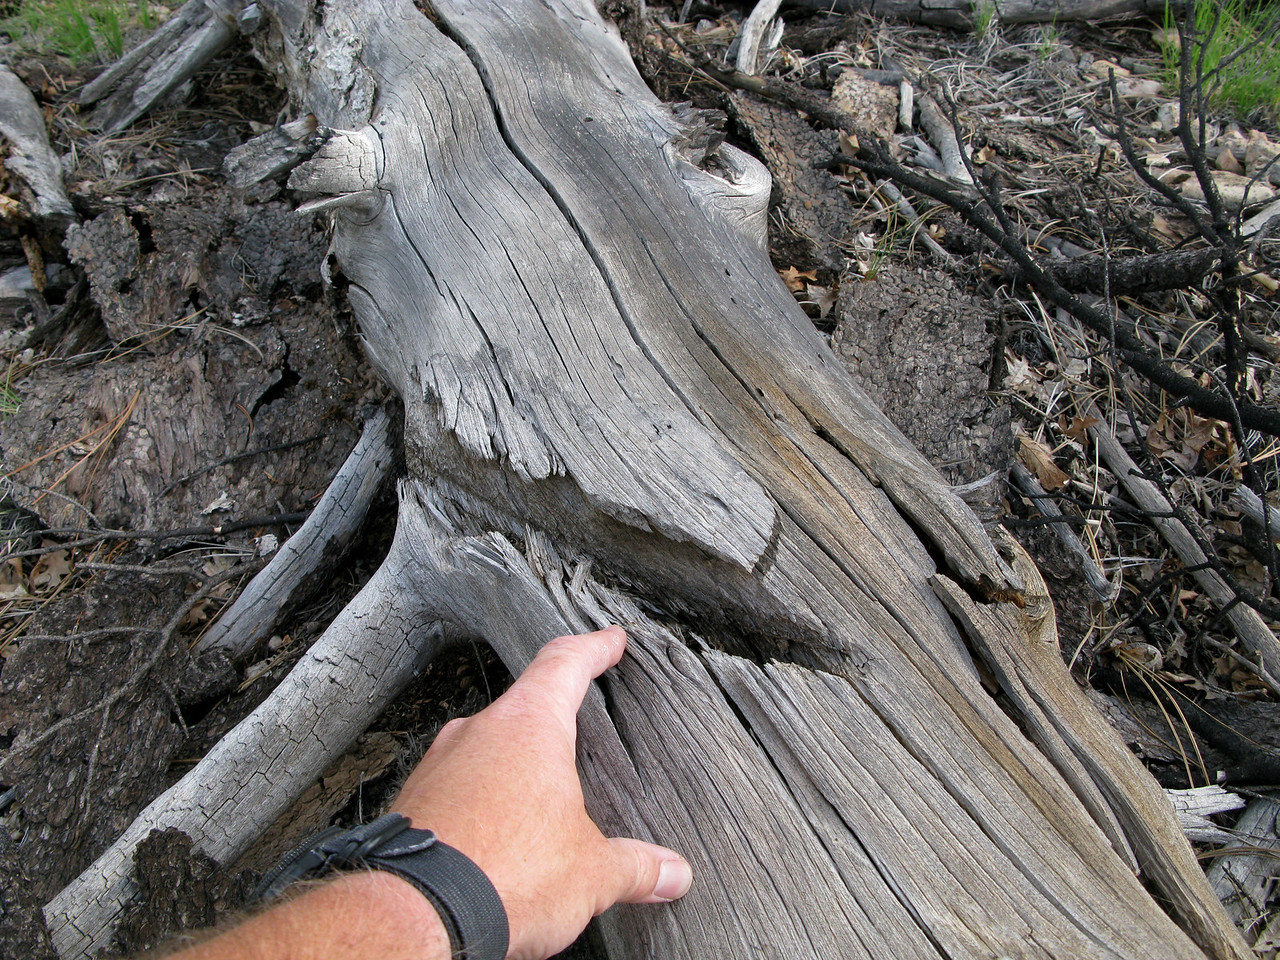 I looked for other propeller tree strike damage at the site, but this cut was the only one I was able to locate.